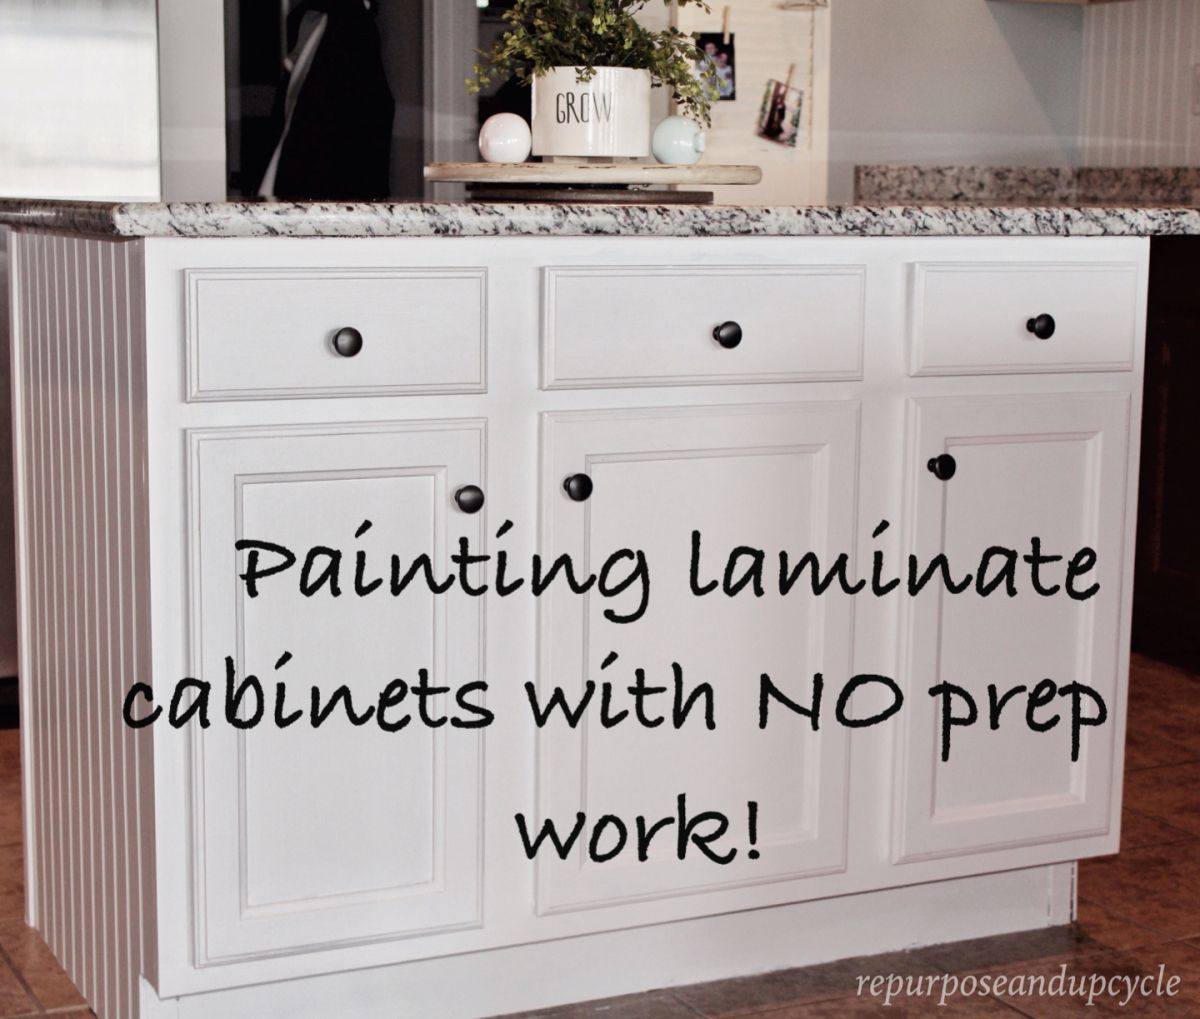 Painting Laminate Cabinets With No Prep Work Kitchen Painting Laminate Cabinets Laminate